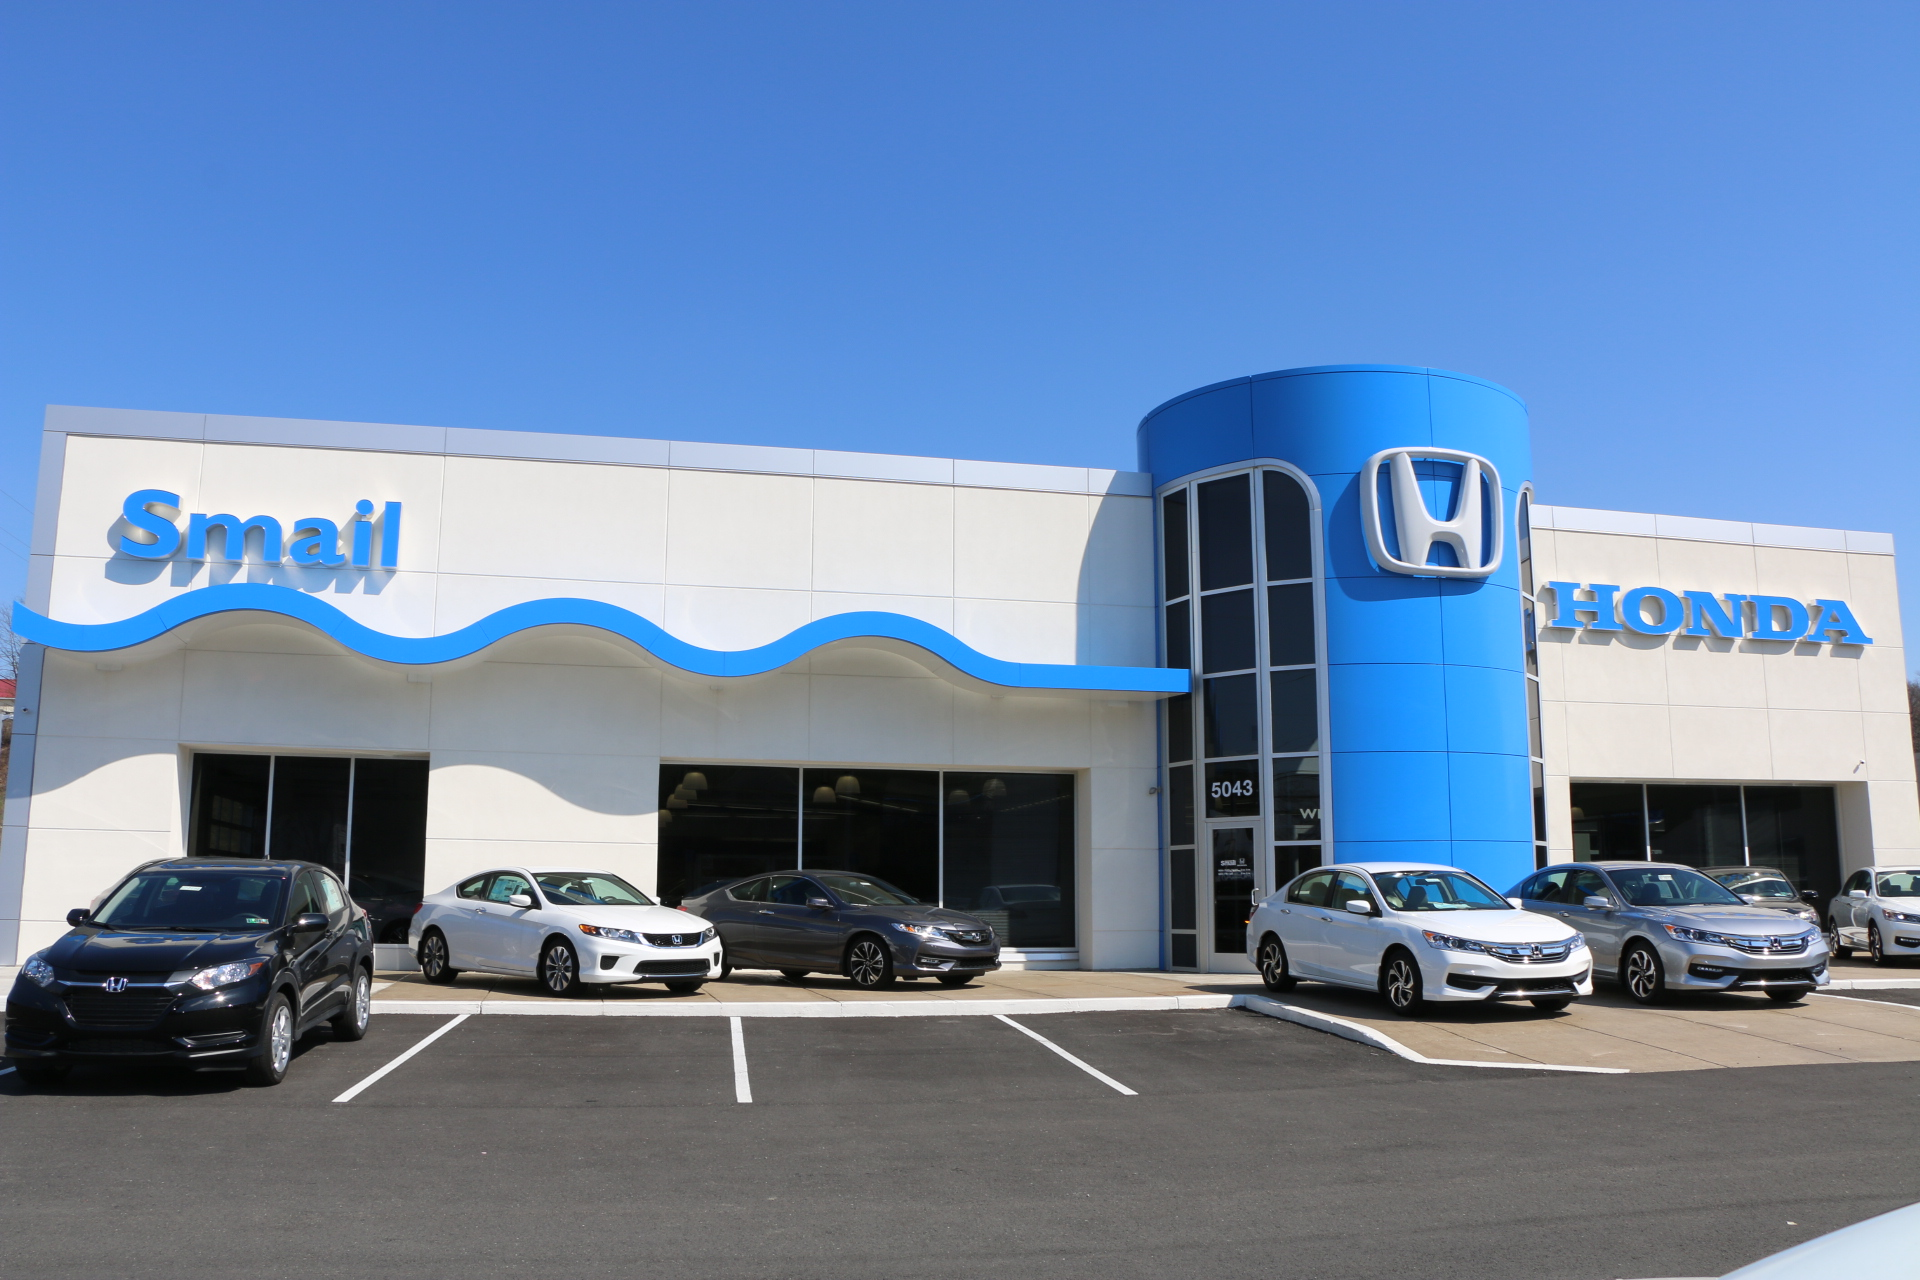 Smail Honda At 5043 U S 30 Greensburg Pa On Fave